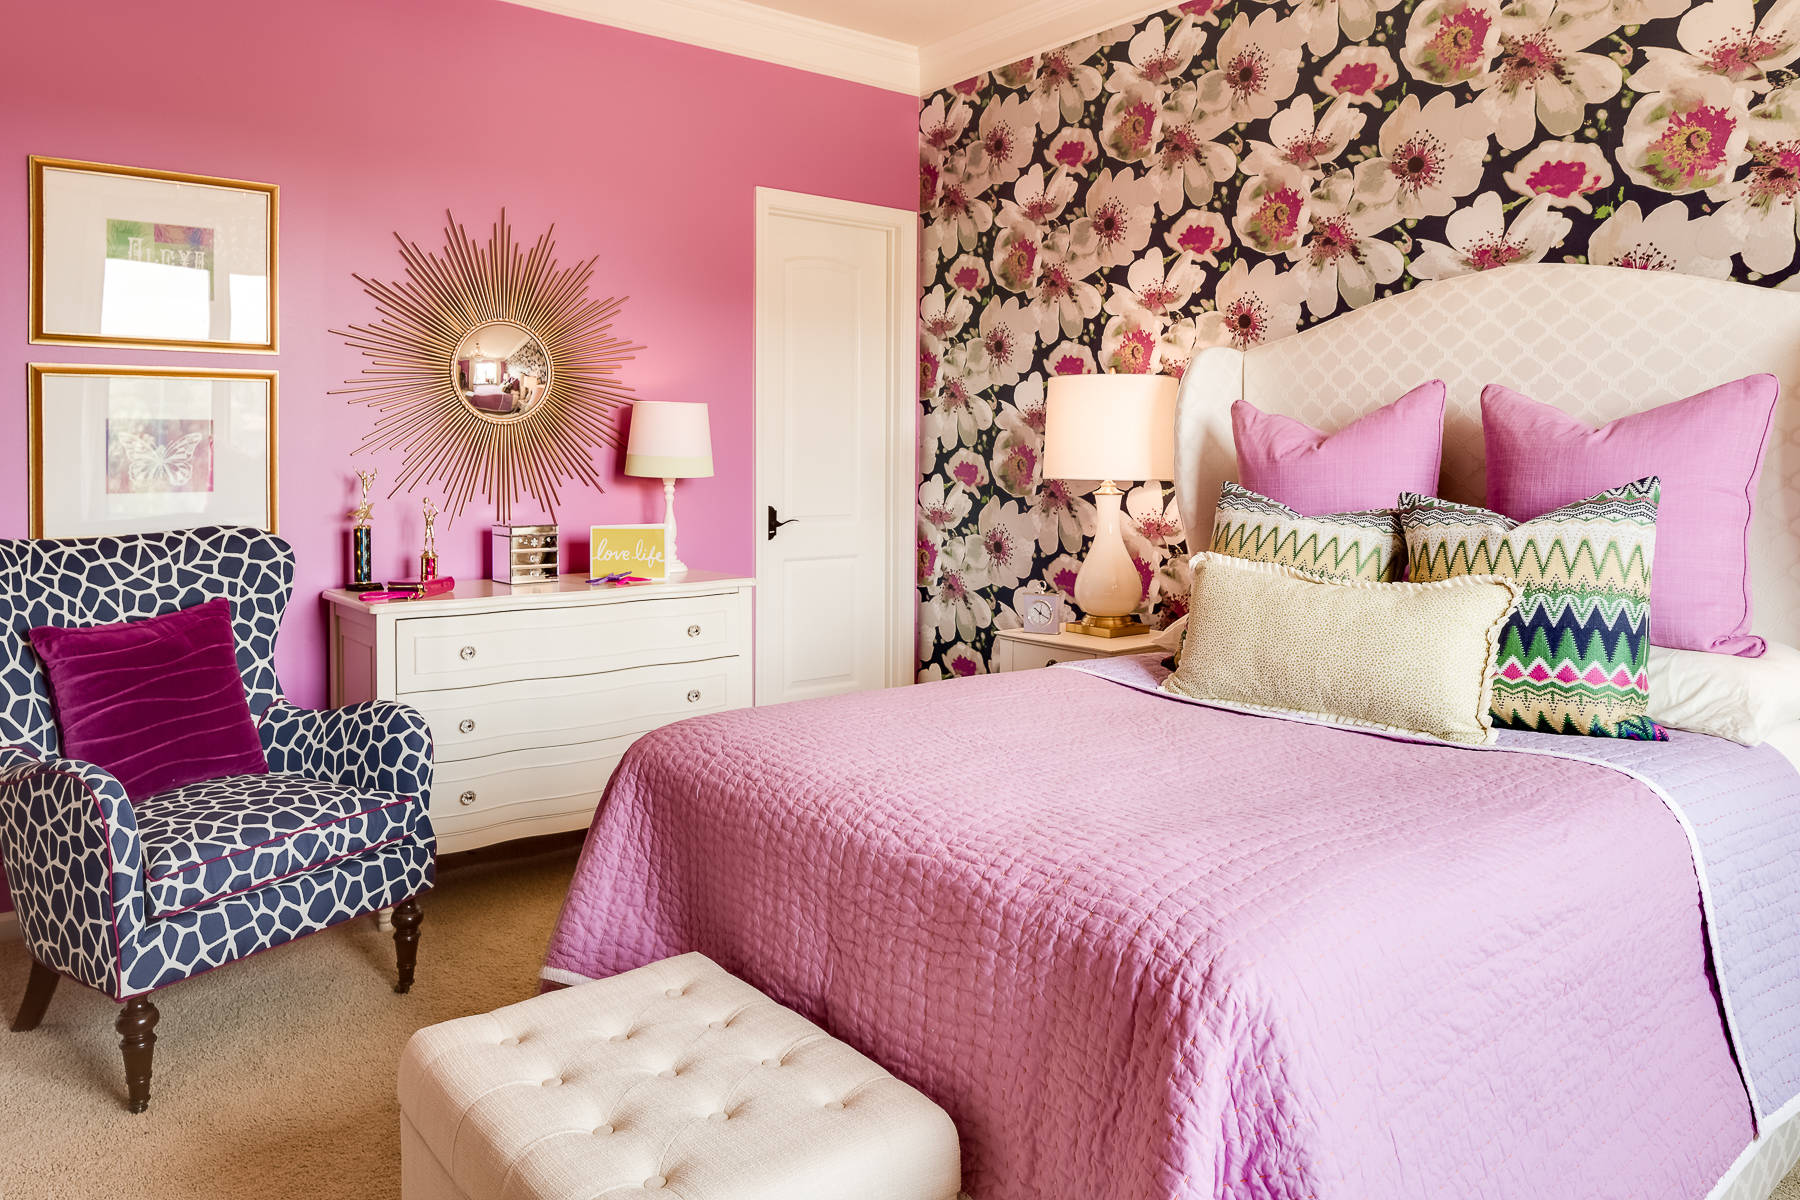 pink girly feminine bedroom pink walls decor pink bedding pillows teenage 3 steps how to decorate shop room ideas traditional eclectic pinterest